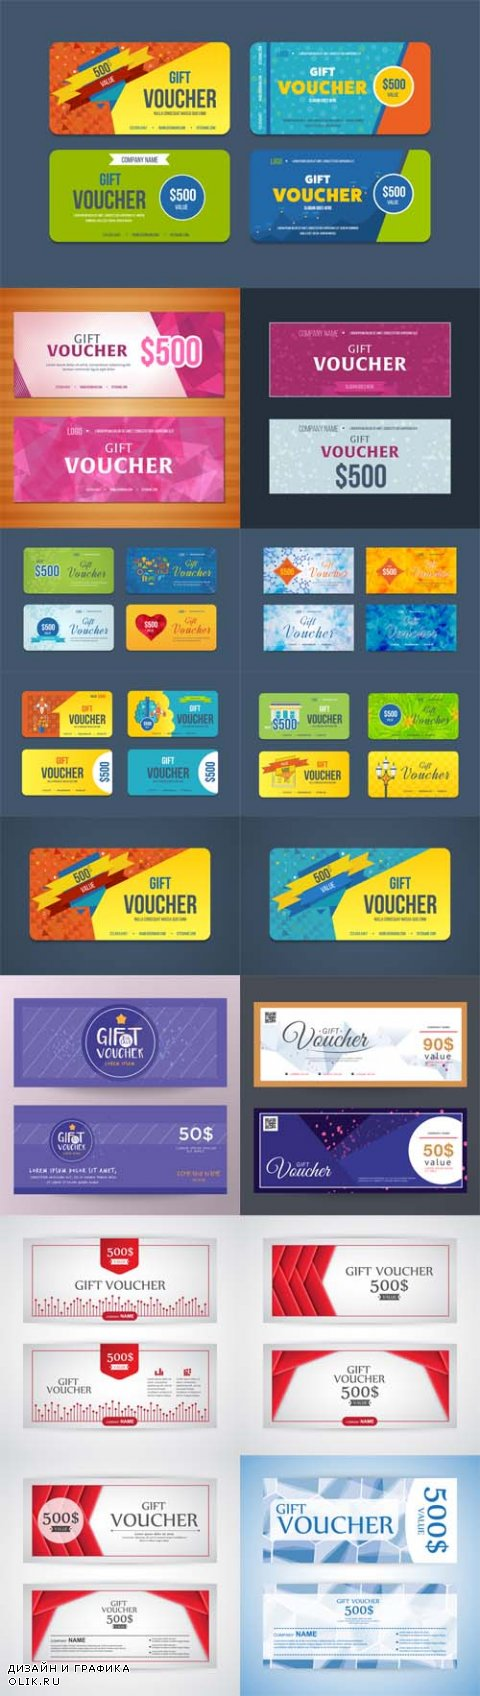 Vector Gift Voucher Illustrations. Card Templates 2